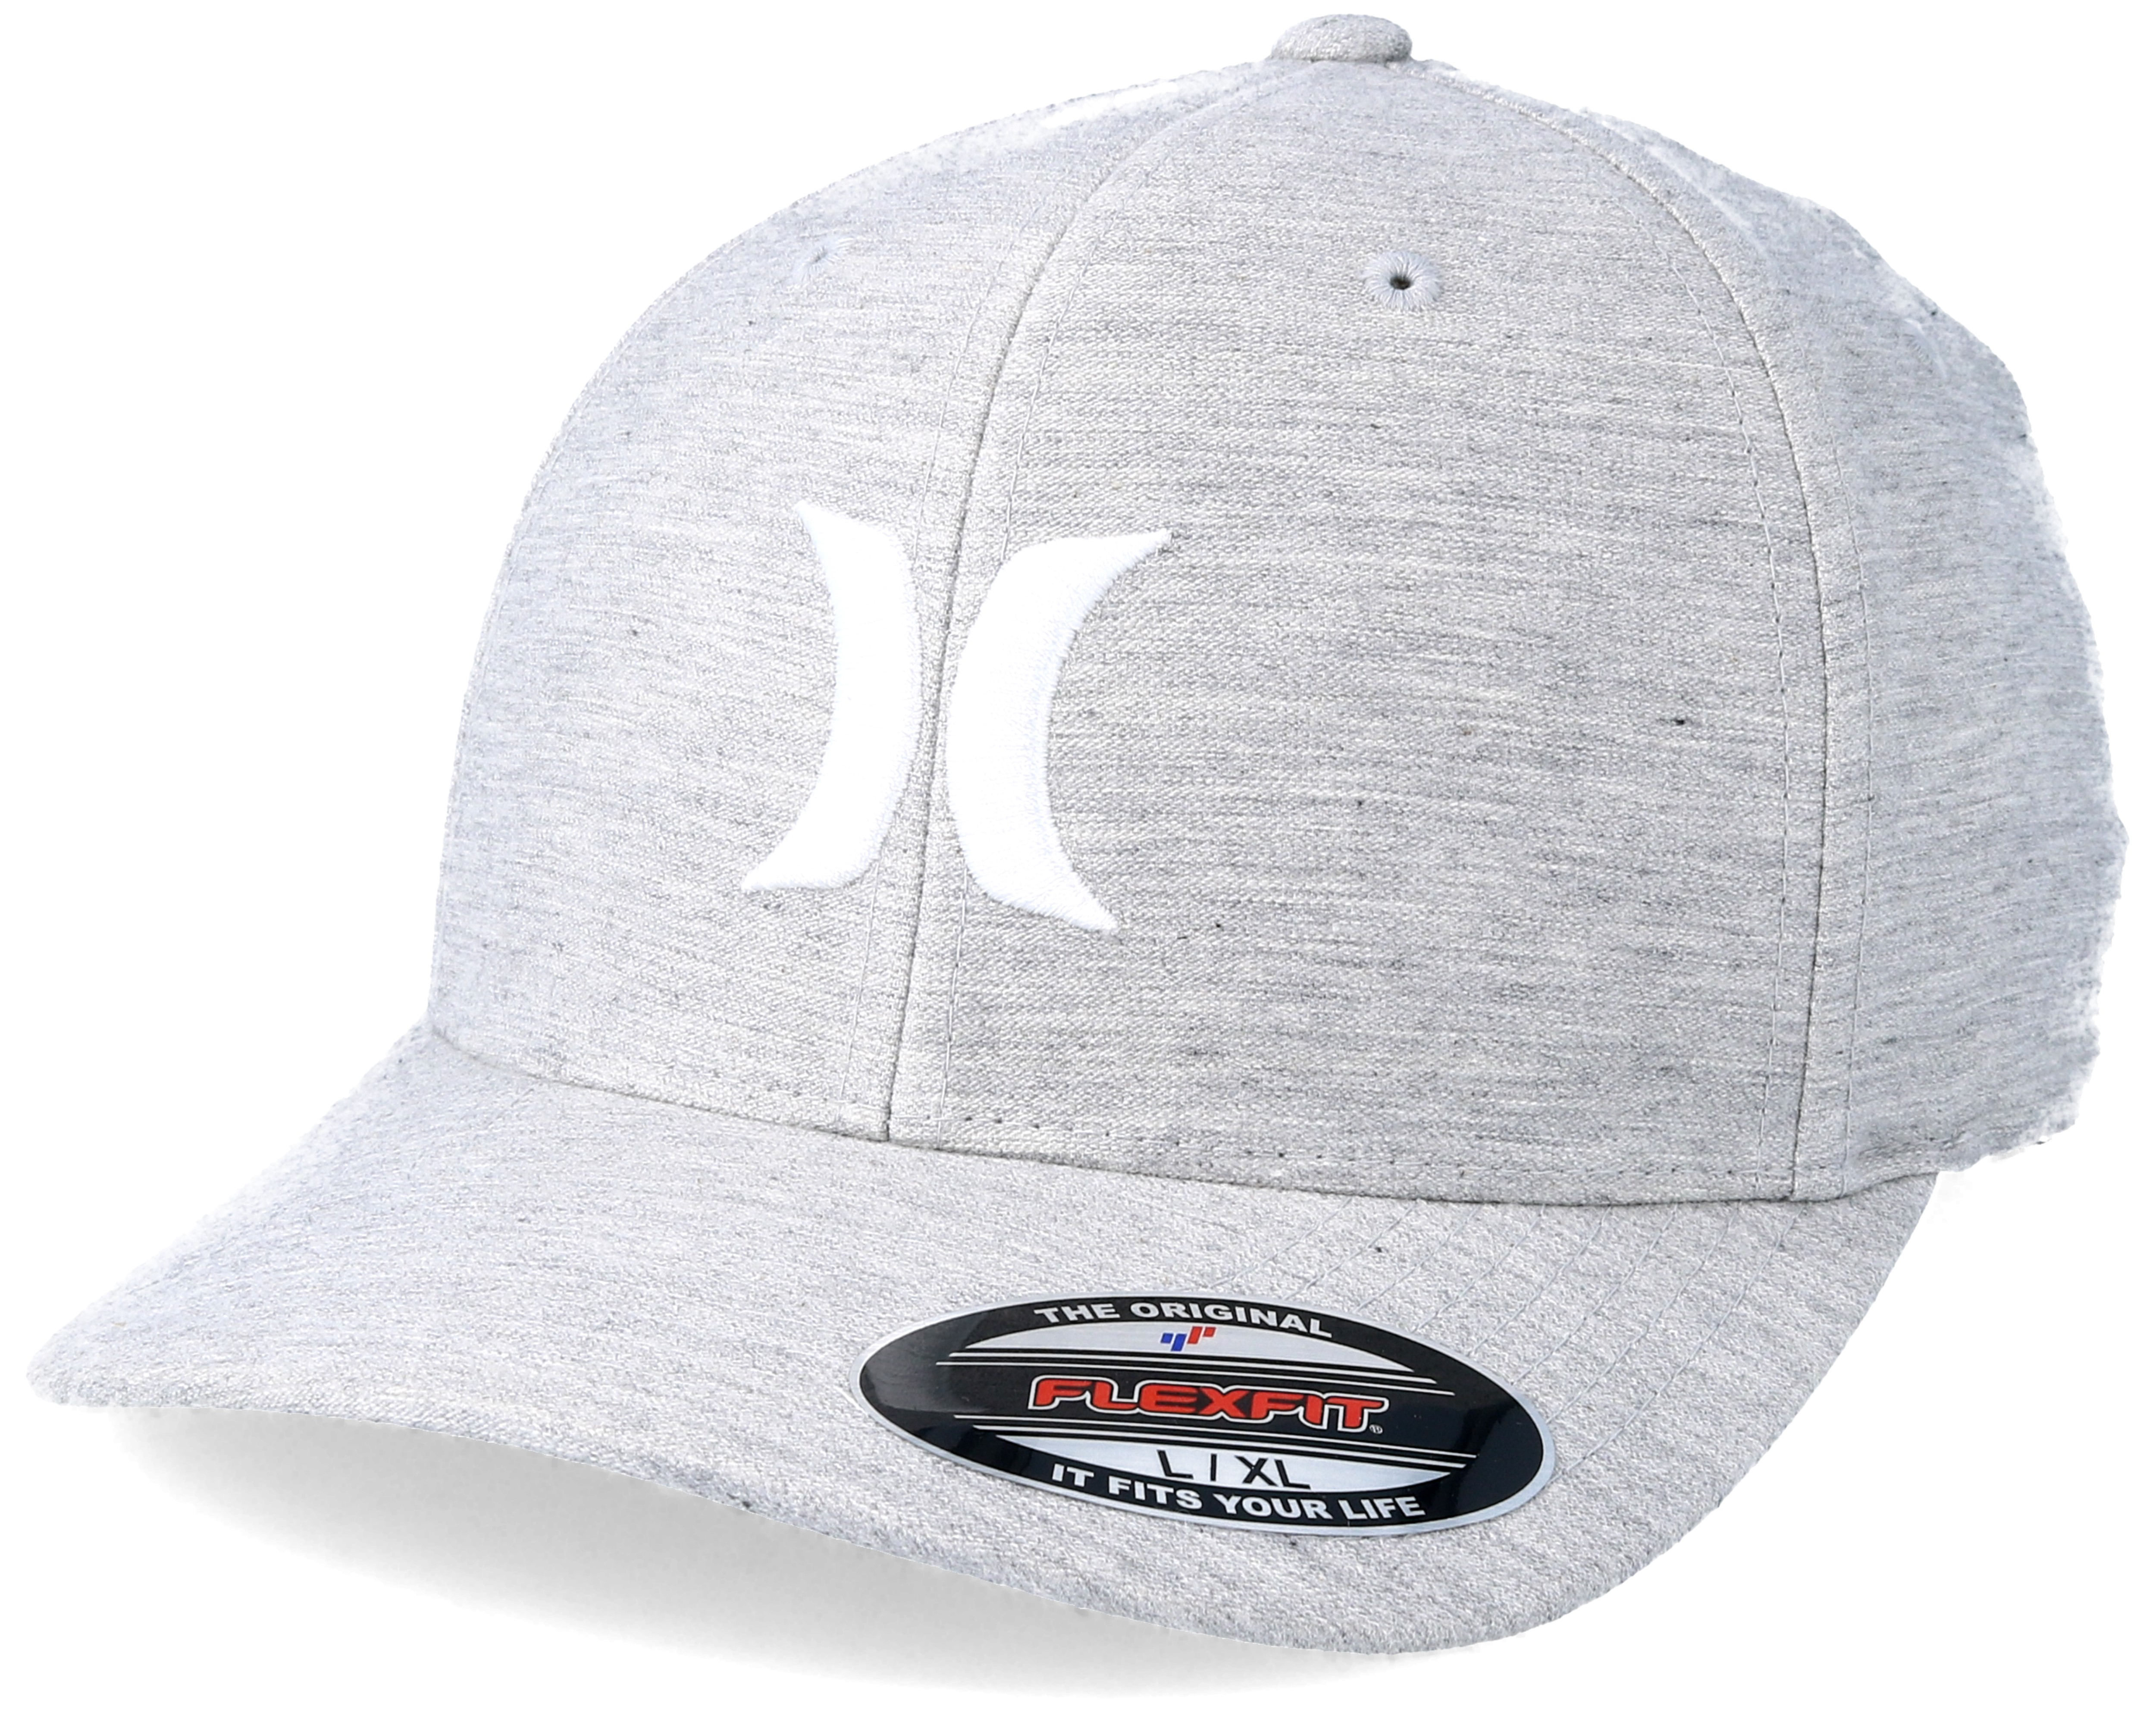 One and Textures Grey Flexfit - Hurley caps  05613243a49